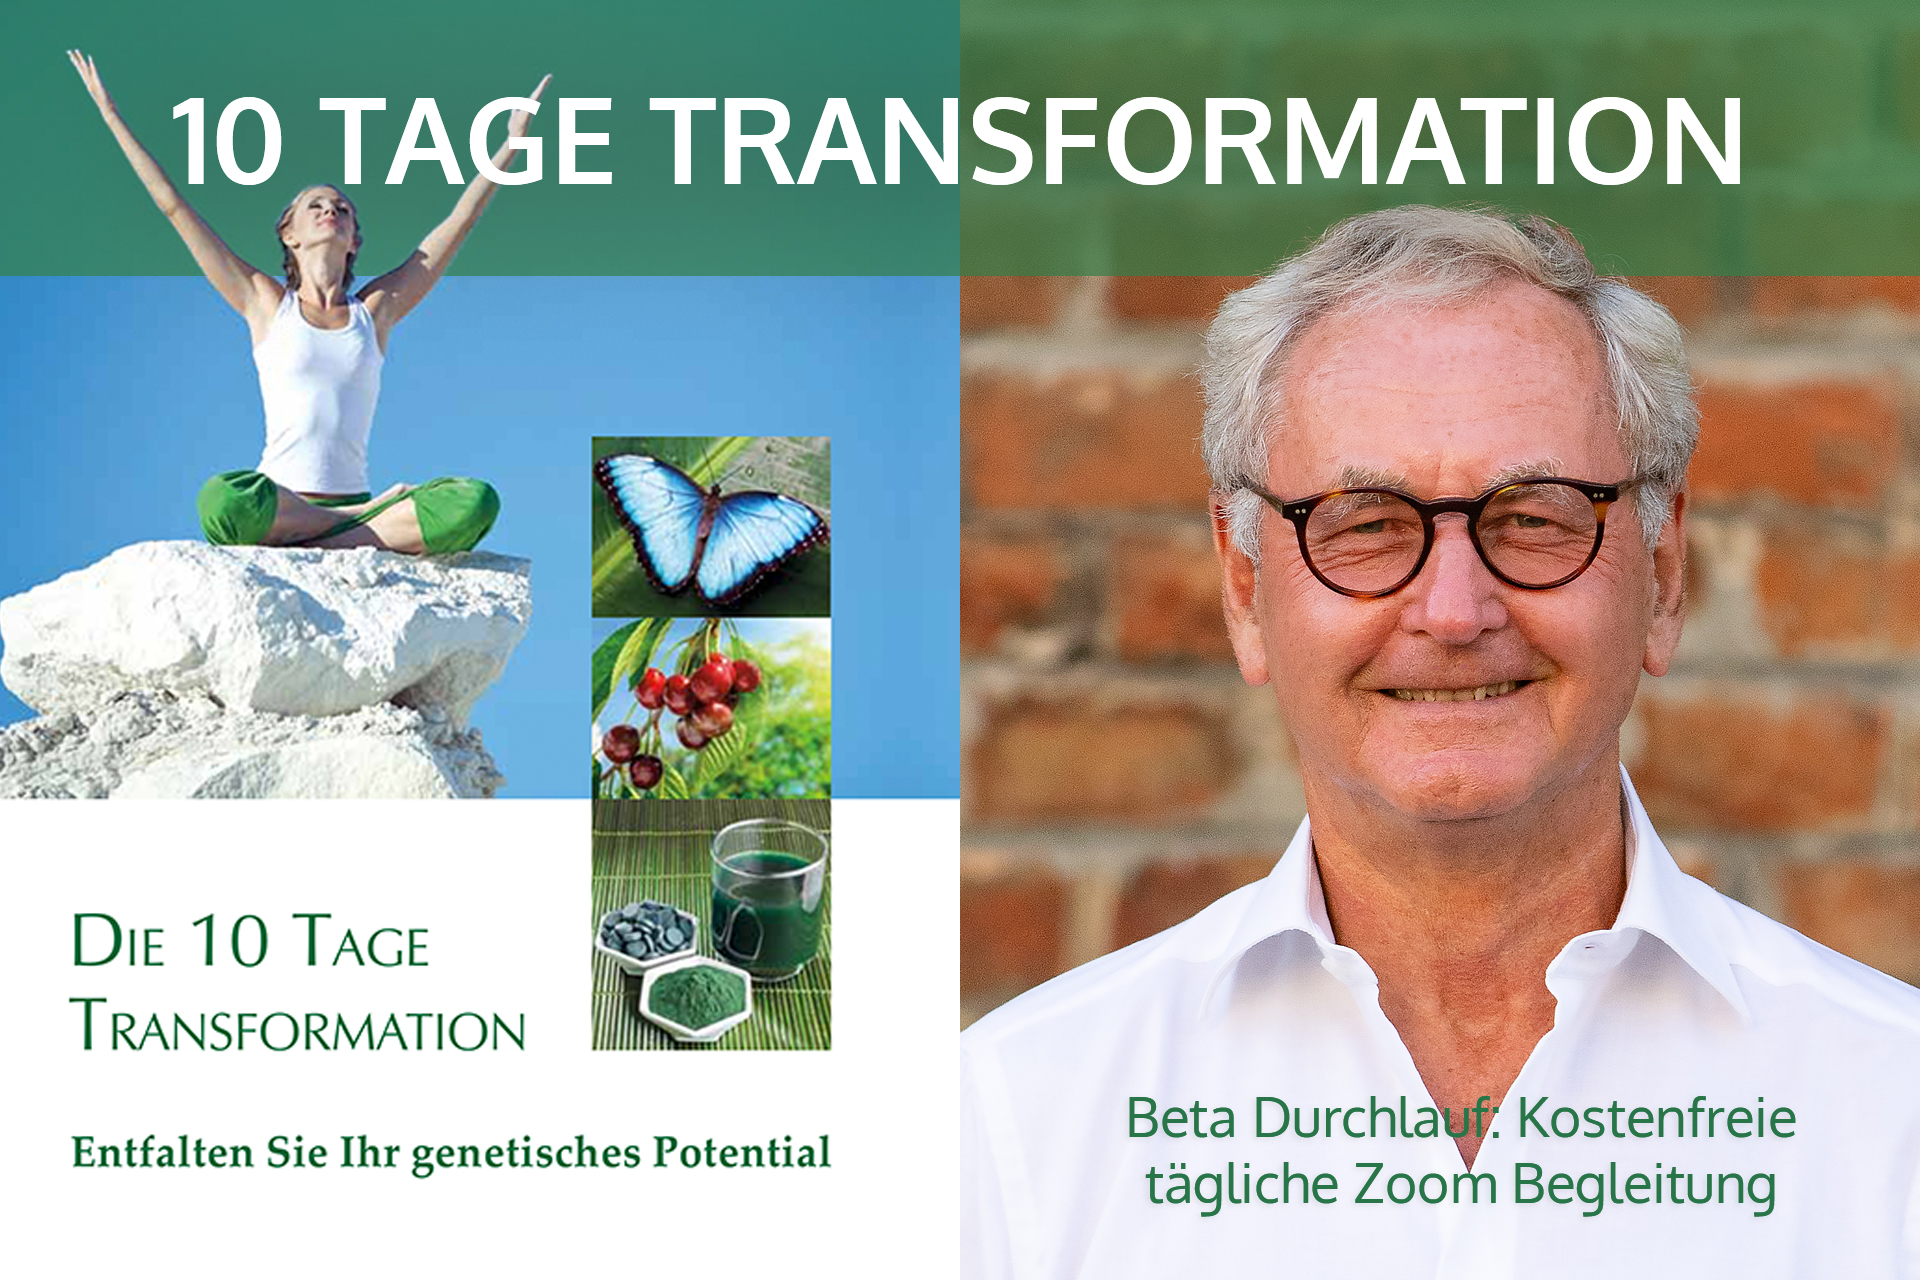 Helmuth Matzner - 10TT - 10 Tage Transformation - Web Banner v1